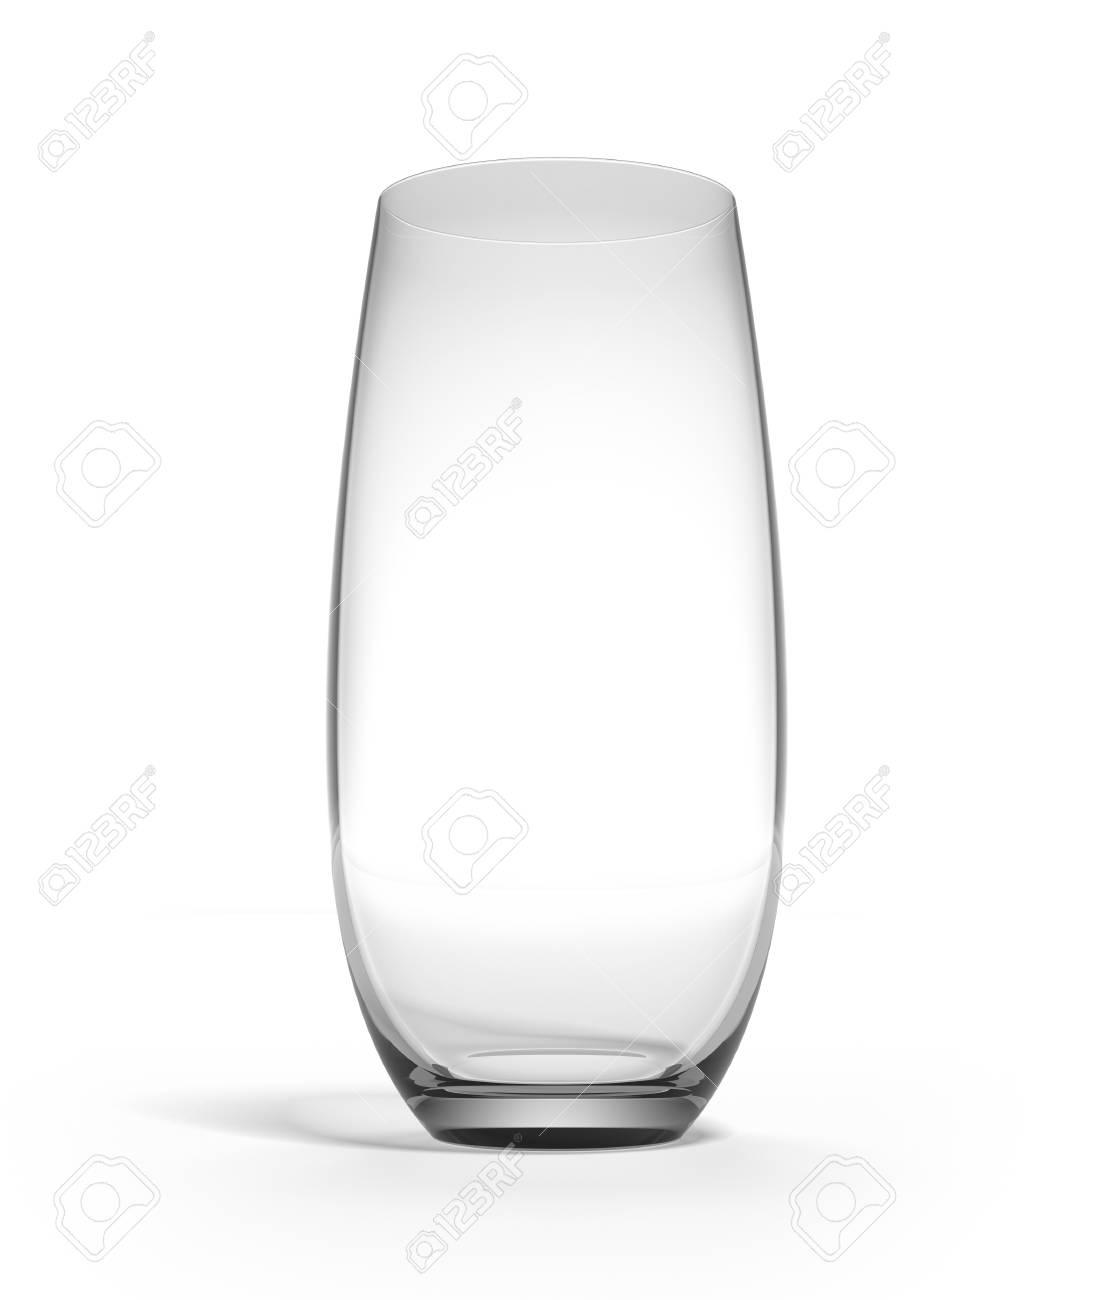 Empty glass isolated on a white background Stock Photo - 17082058